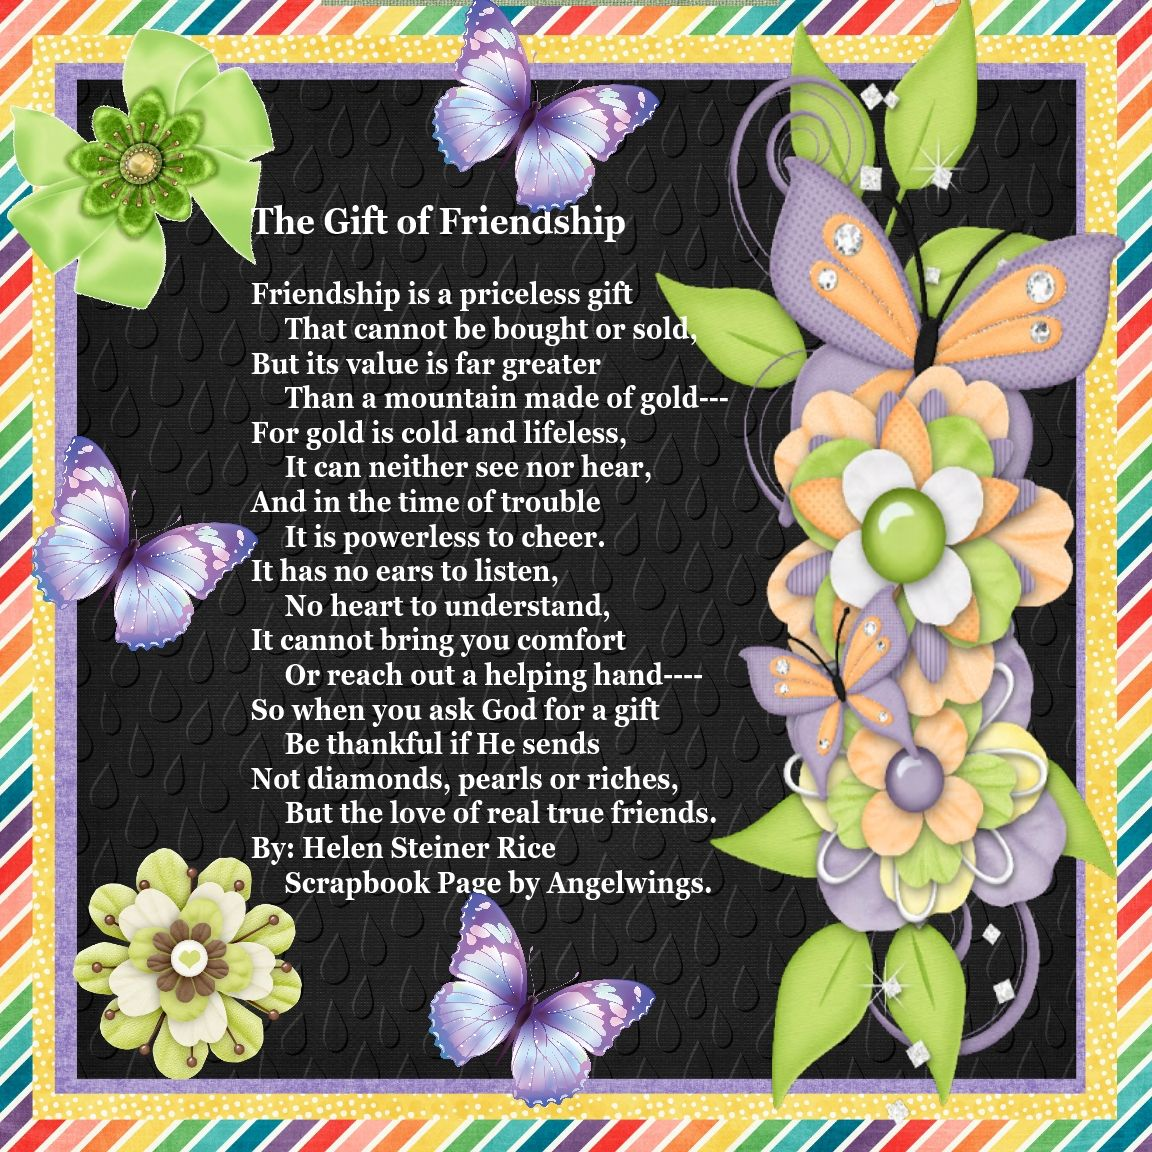 """The Gift of Friendship"", by Helen Steiner Rice, Scrapbook Page by Angelwings."